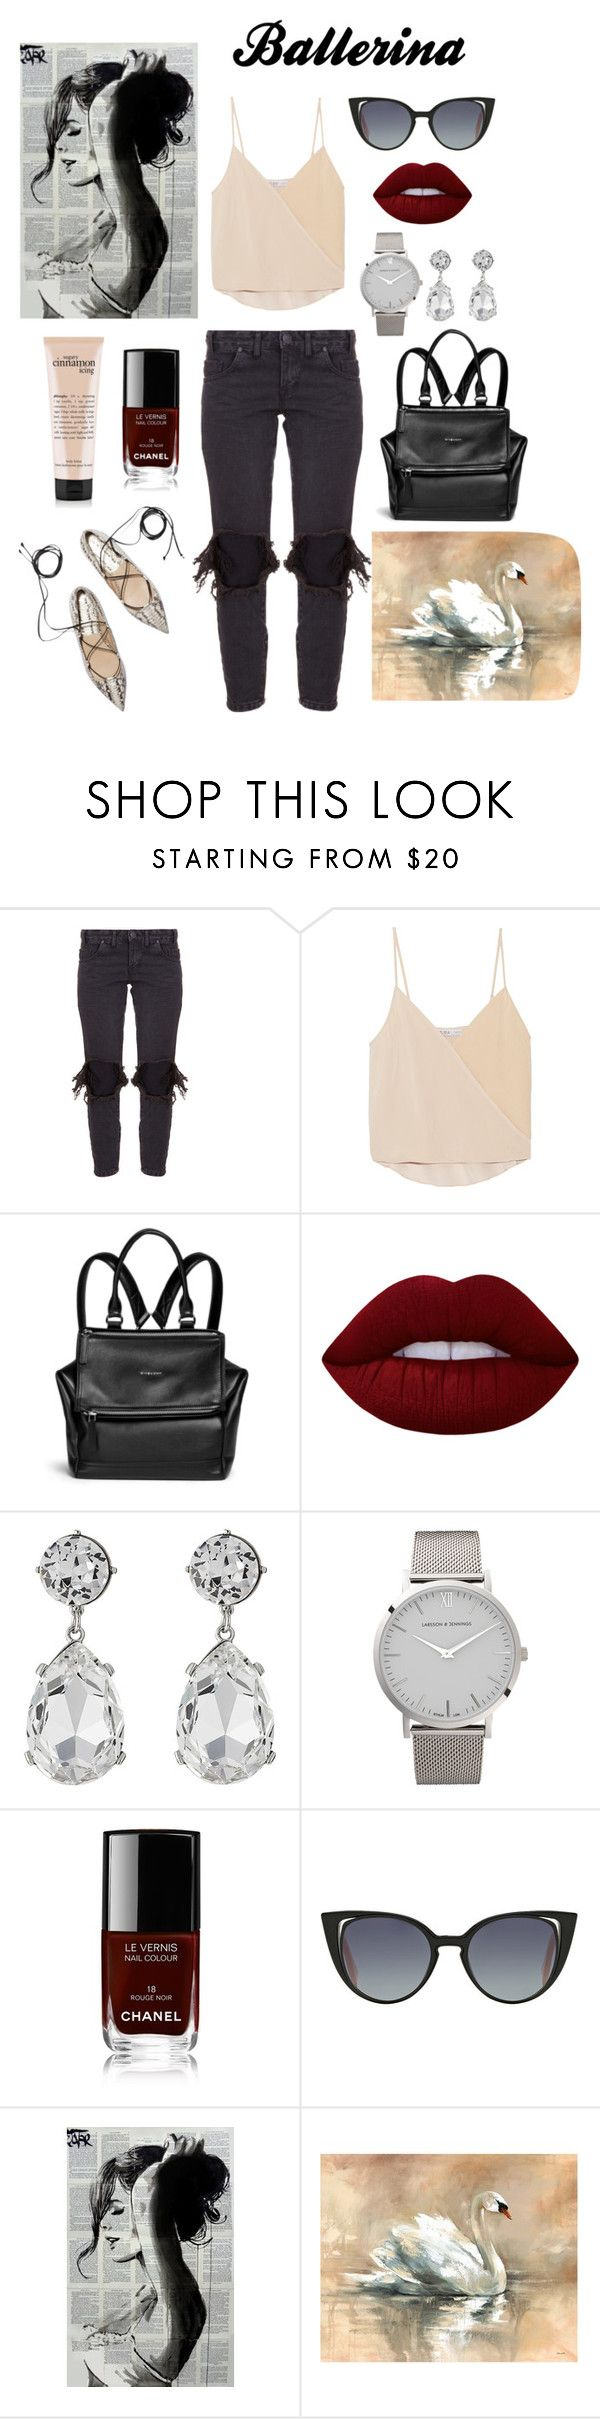 """""""ballerina"""" by evitaom on Polyvore featuring One Teaspoon, Chelsea Flower, Givenchy, Lime Crime, Kenneth Jay Lane, Larsson & Jennings, Chanel, Fendi and Leftbank Art"""